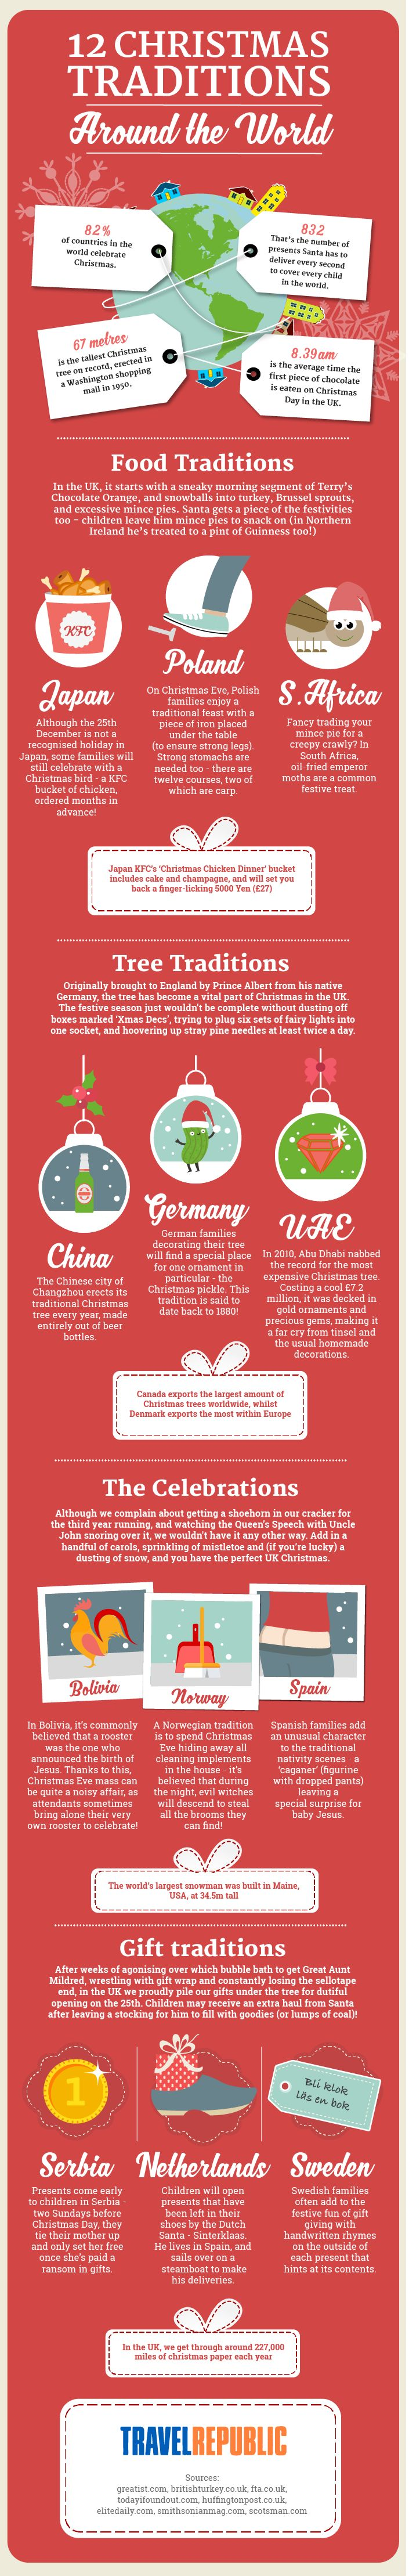 12 Christmas Traditions Around the World #infographic #Christmas #Travel